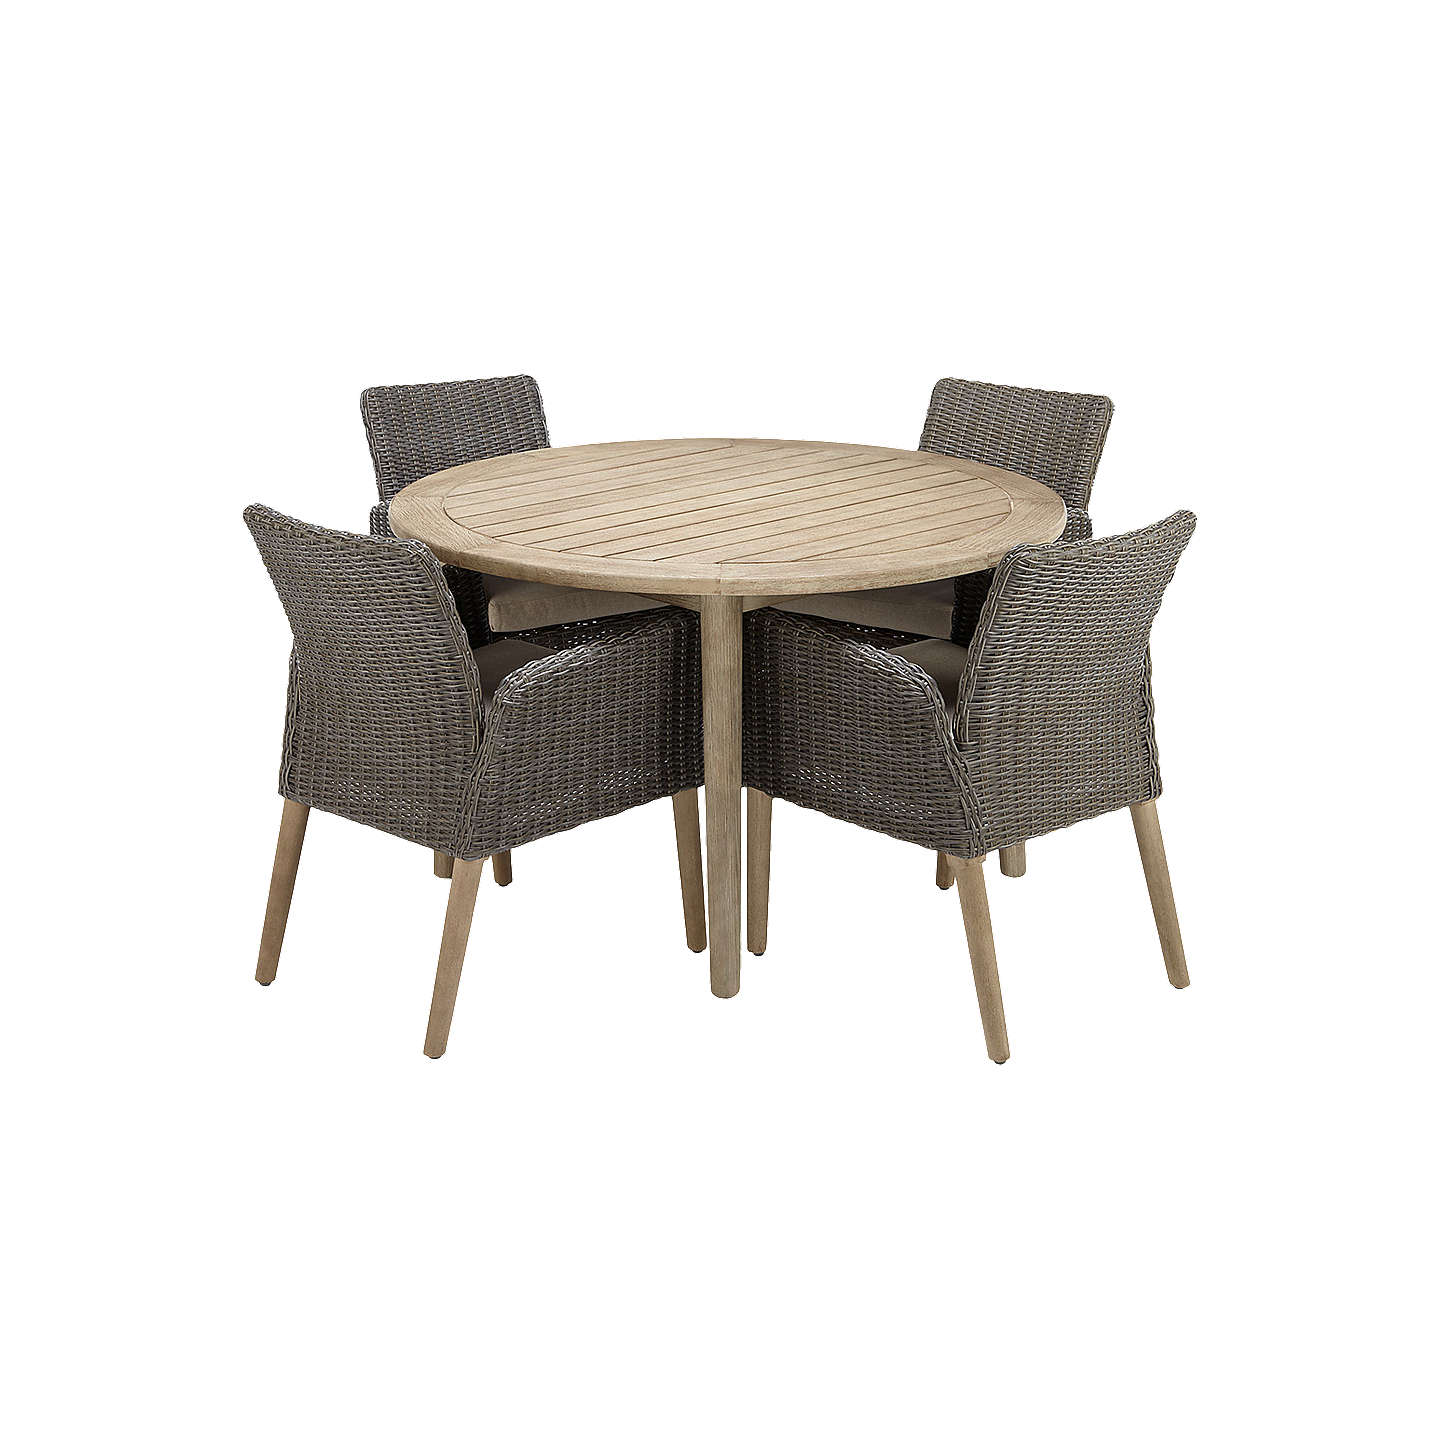 outdoor round dining table. BuyJohn Lewis Eden 4 Seater Outdoor Round Dining Table And Chairs Set, FSC-Certified I